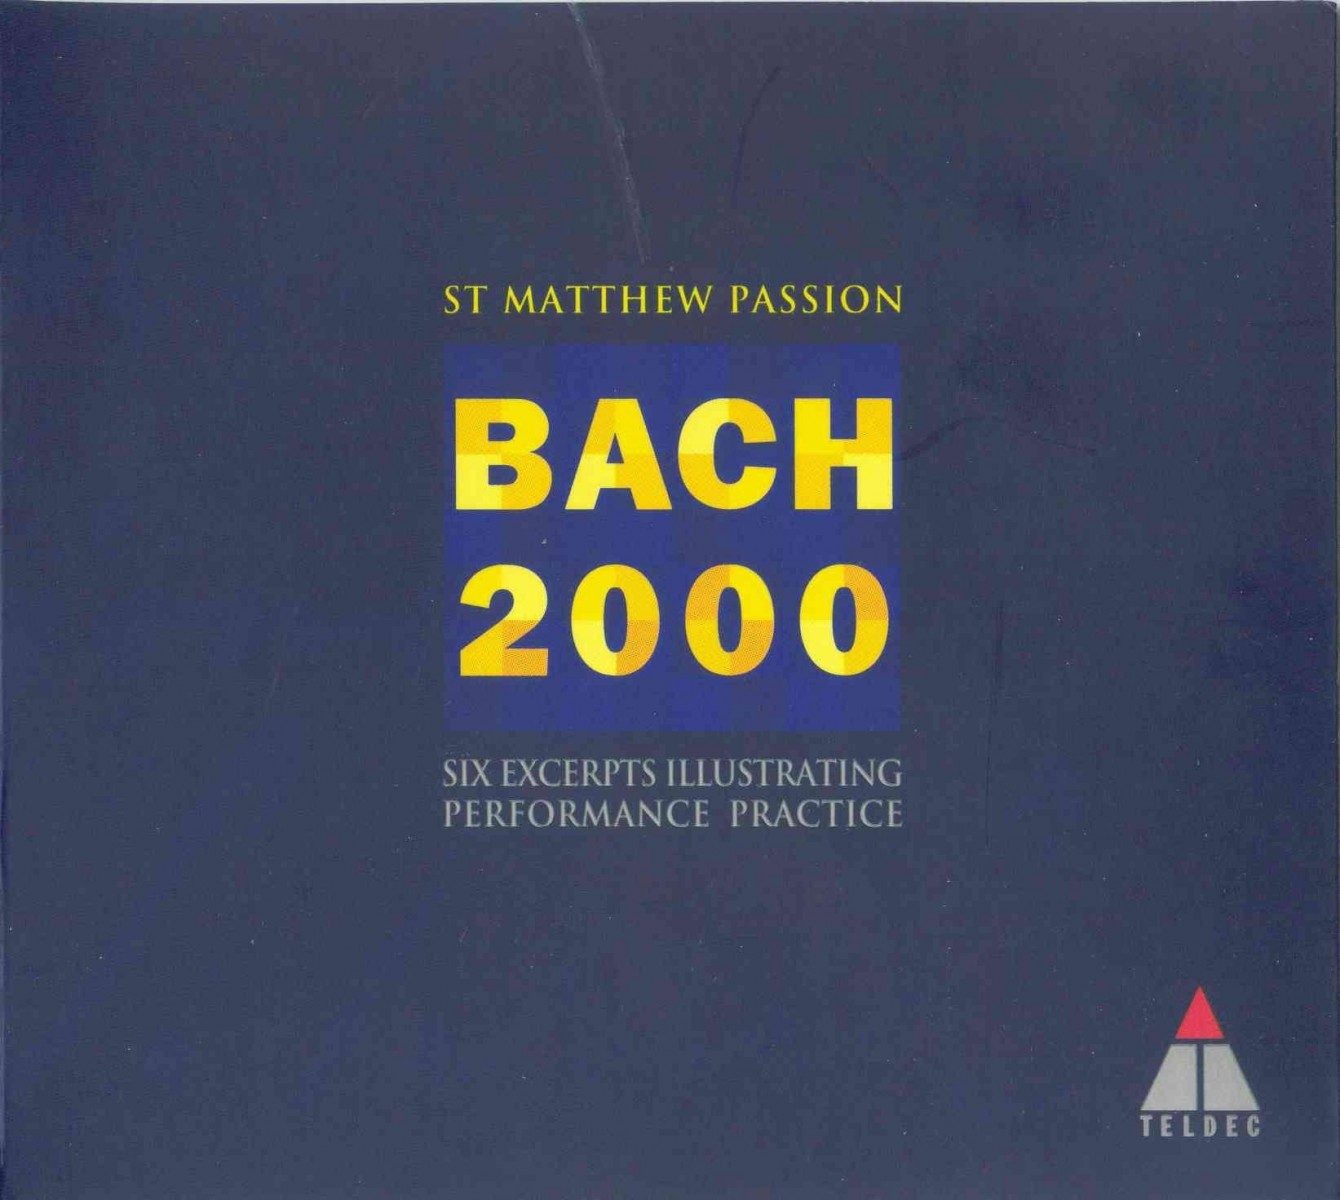 St Matthew Passion - Bach 2000: Six Excerpts Illustrating Performance Practice CD - 3984281762